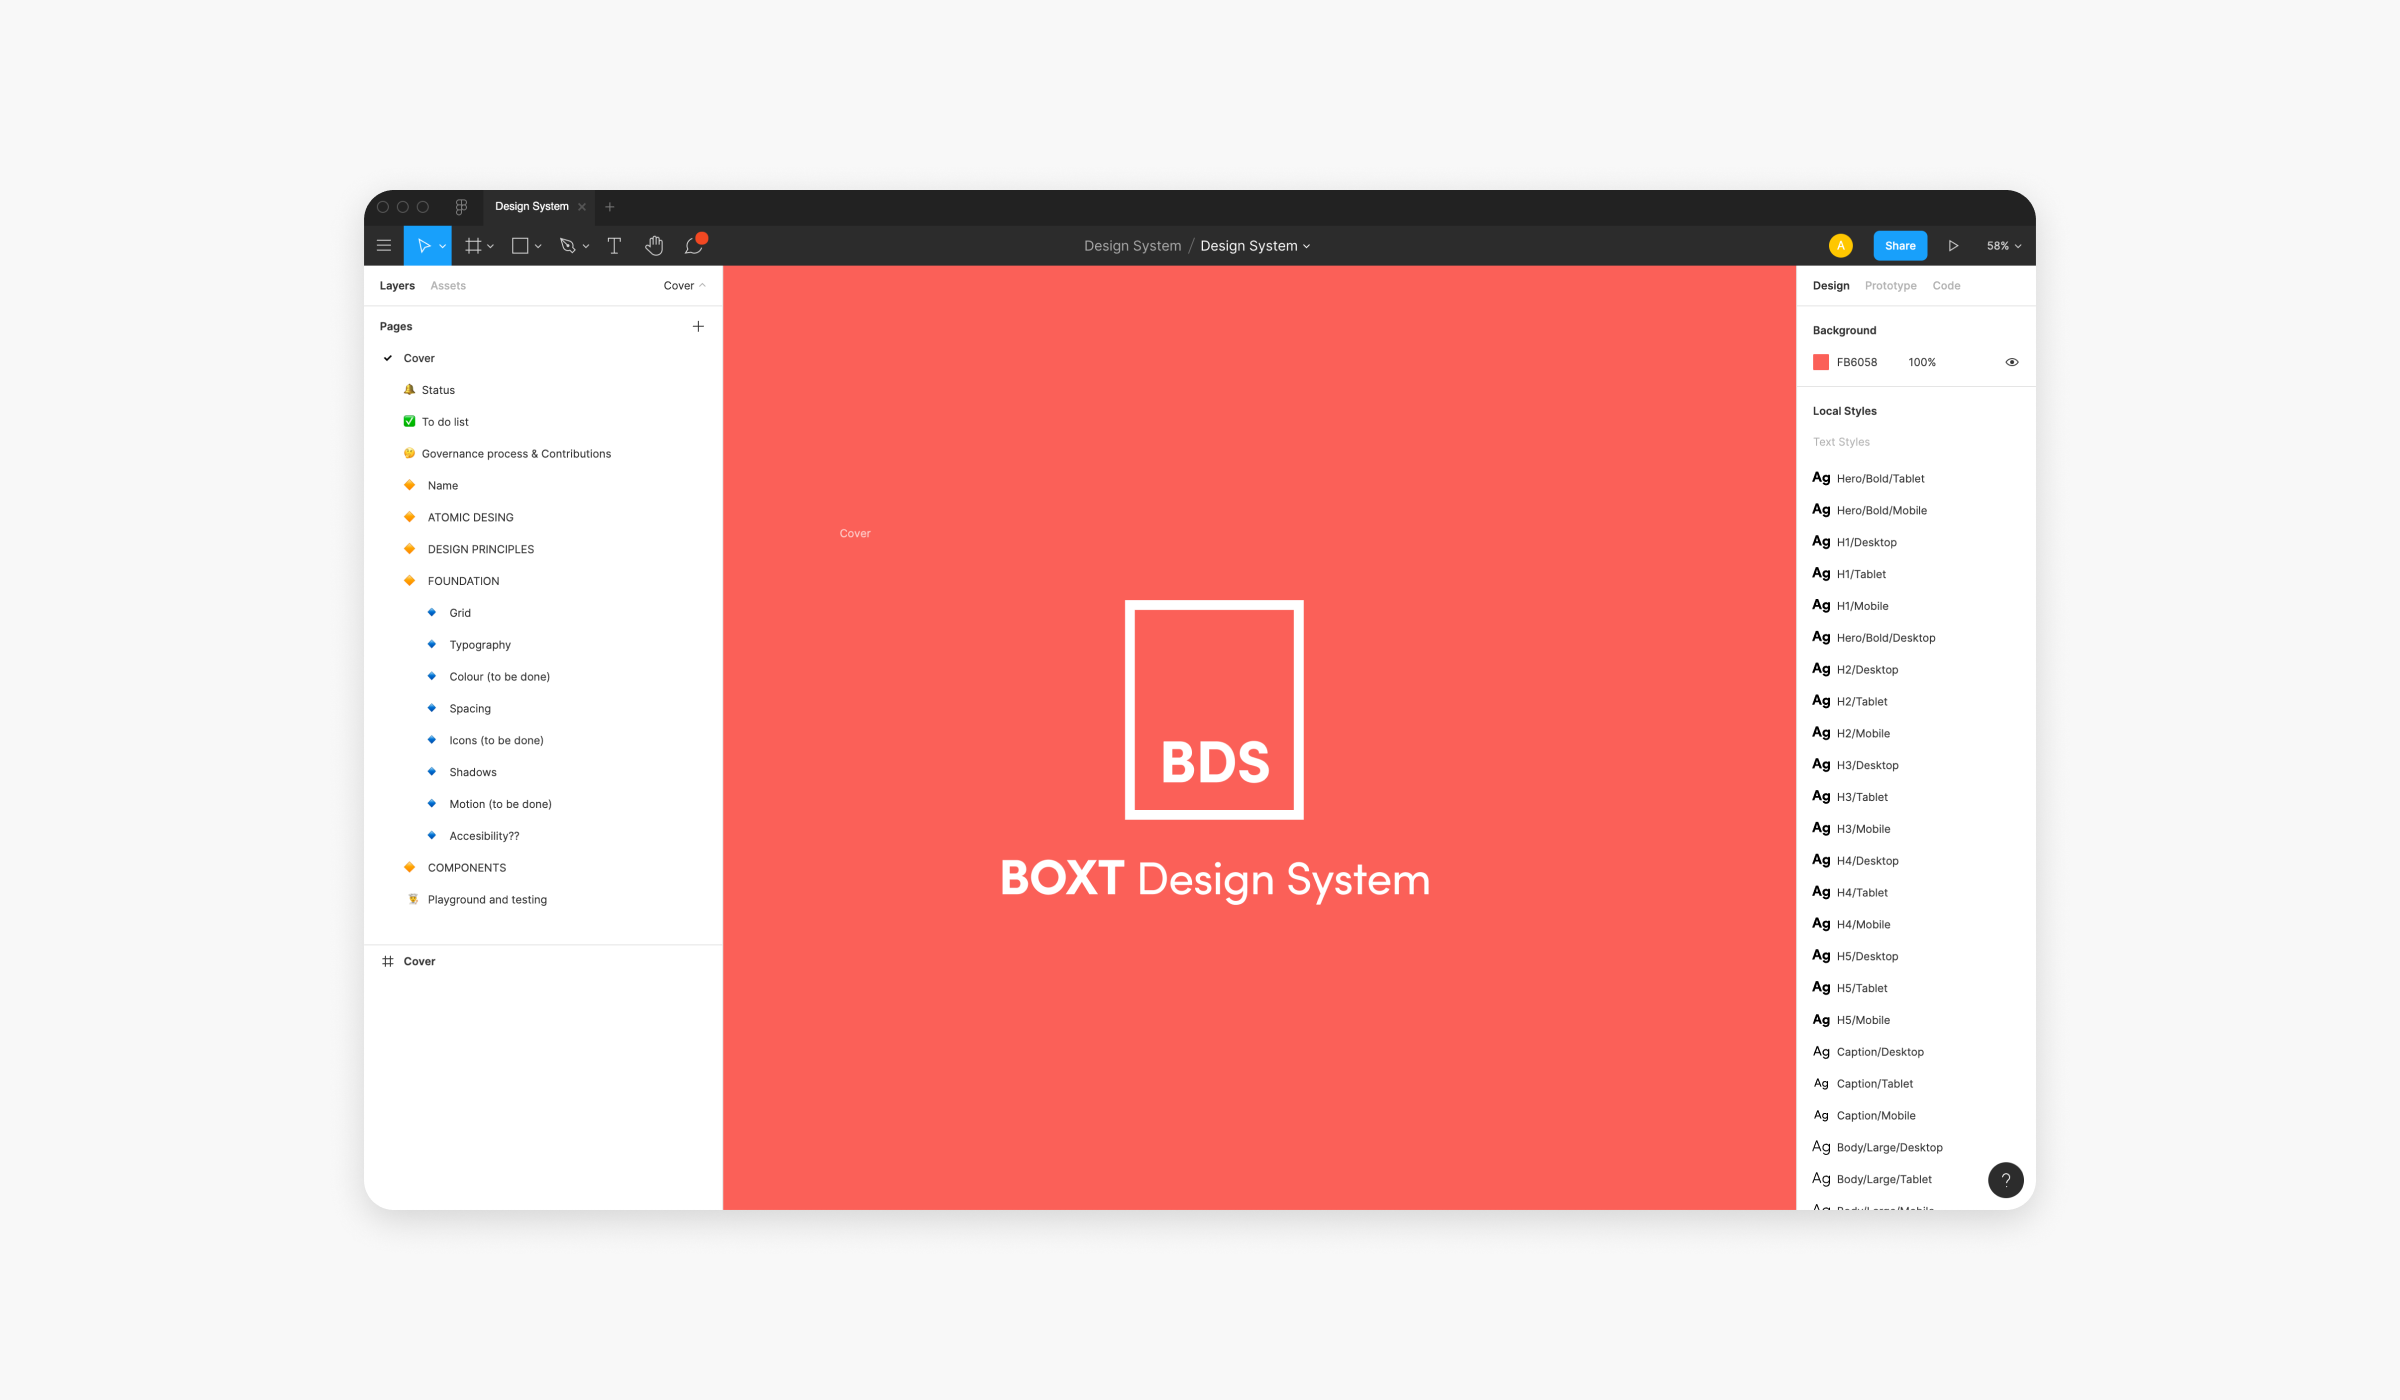 Design System for BOXT in the Figma file format.